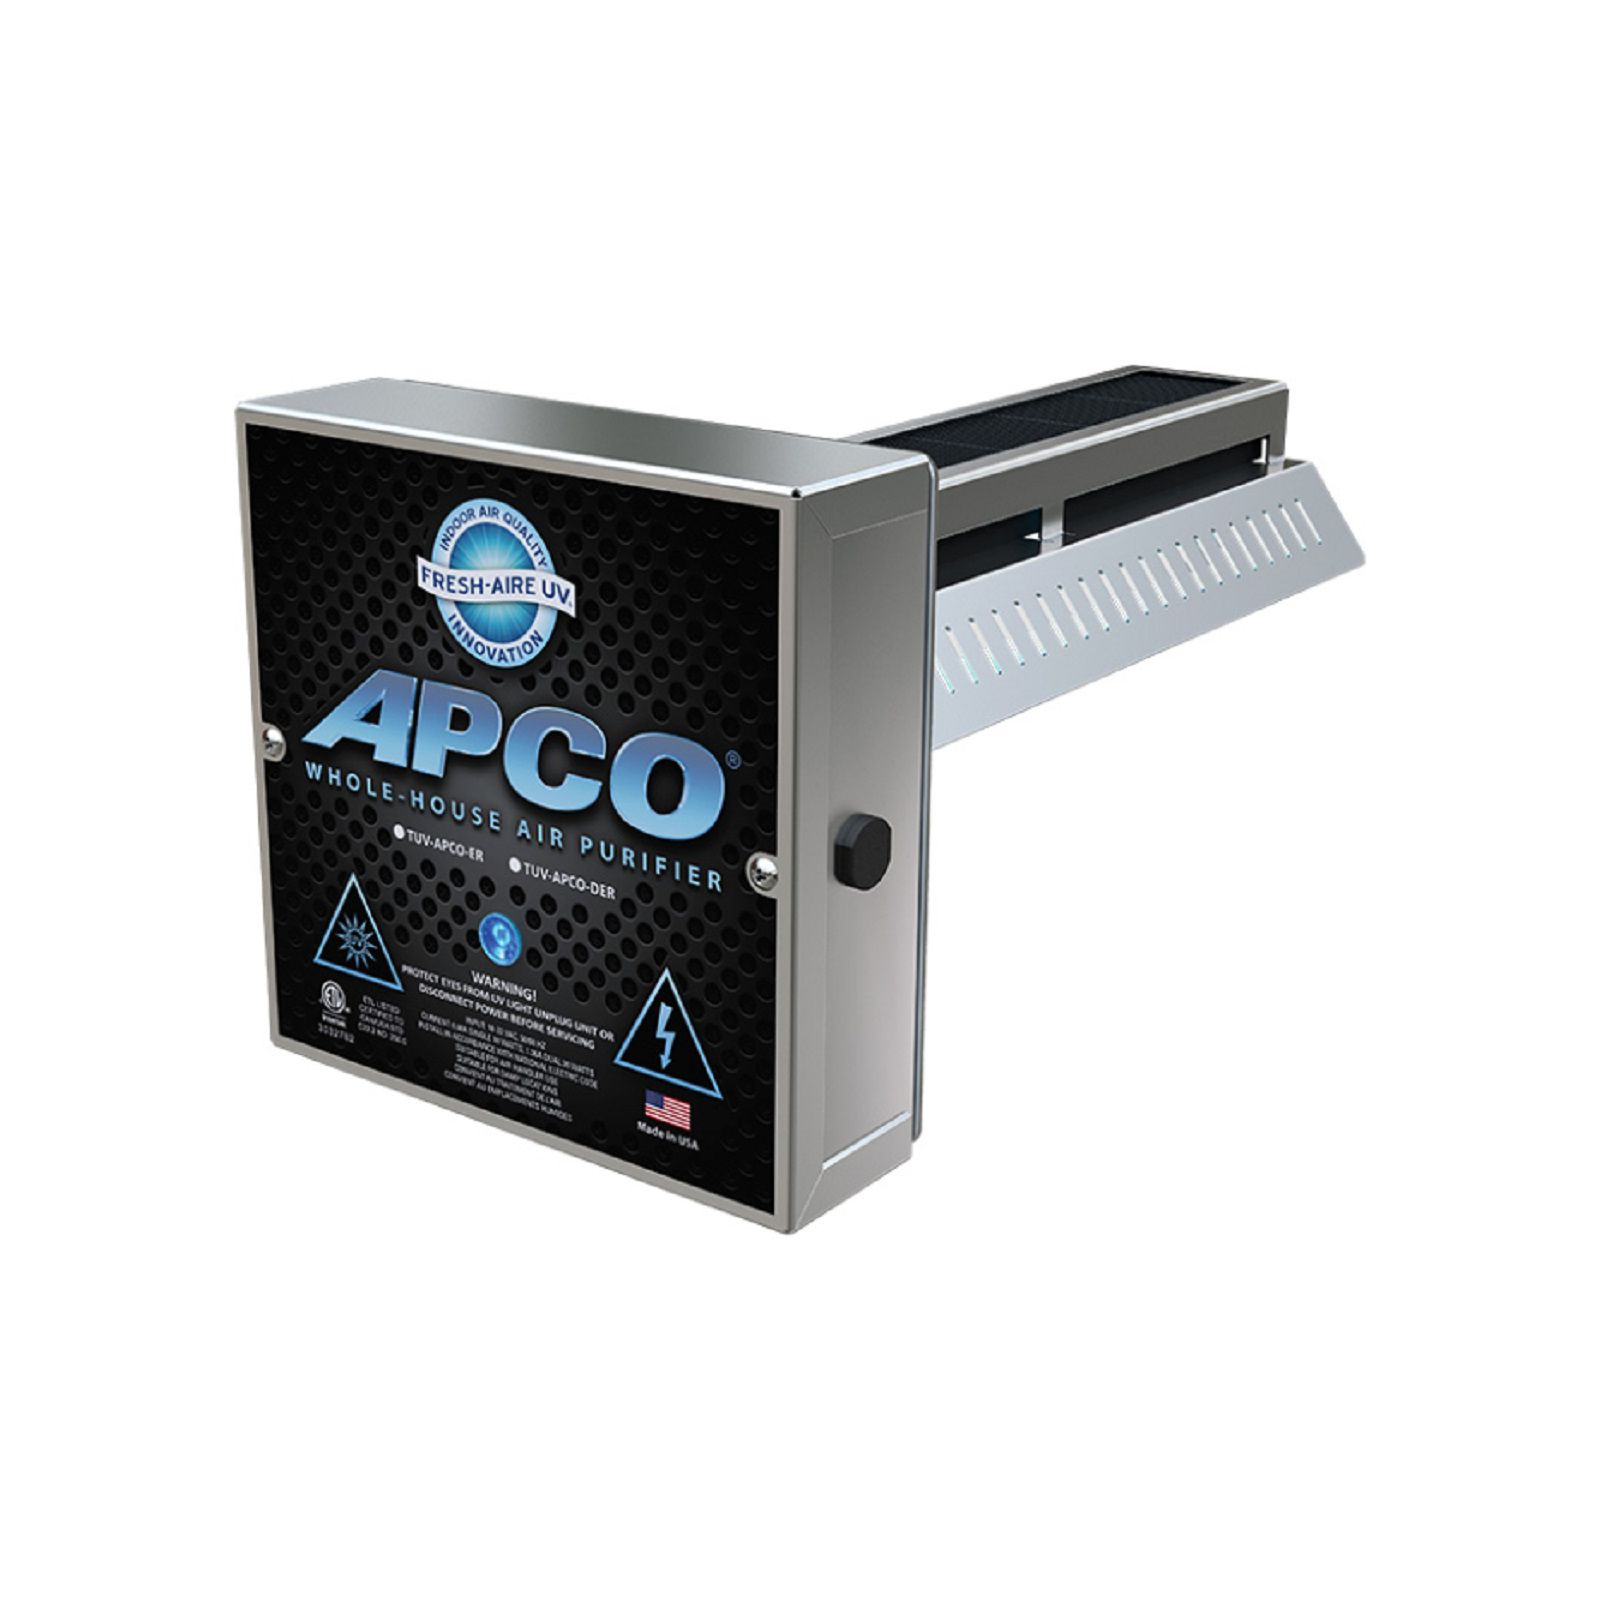 Triatomic TUV-APCO-DI - One Year Lamp, with 2nd Remote Lamp (110-277 VAC series) APCO In-Duct